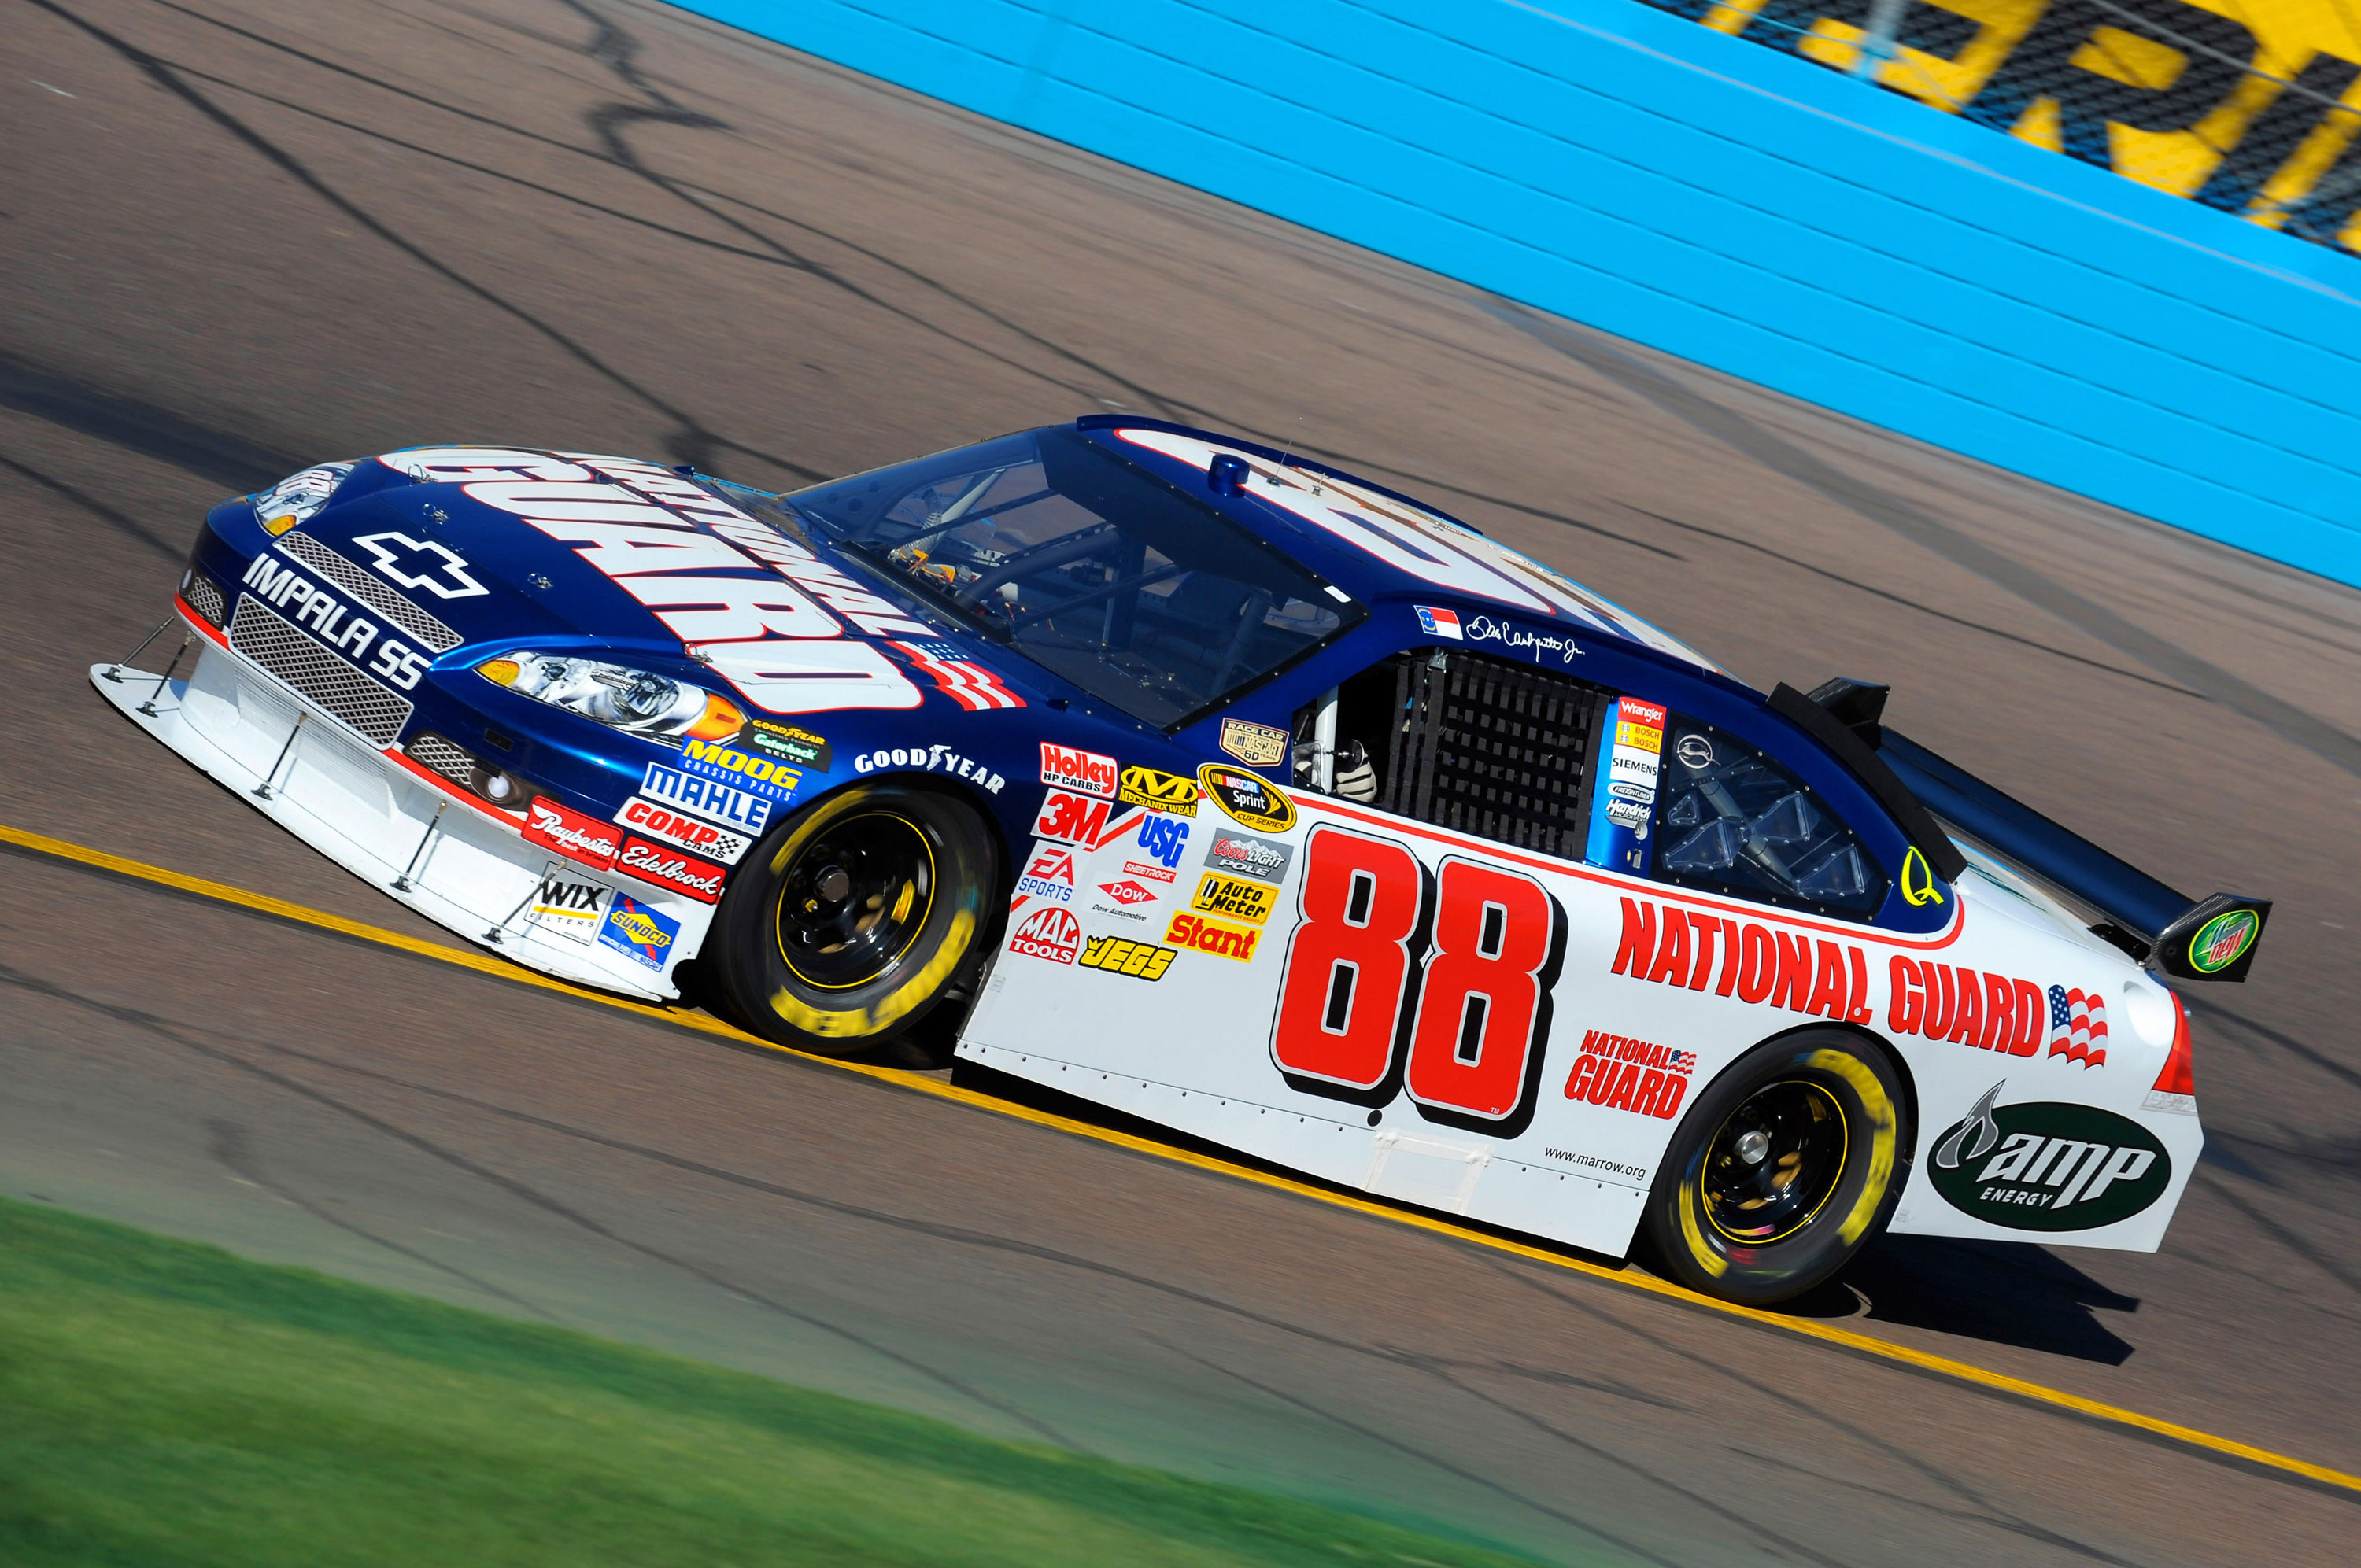 Earnhardt and Guard car team climb to third in point standings